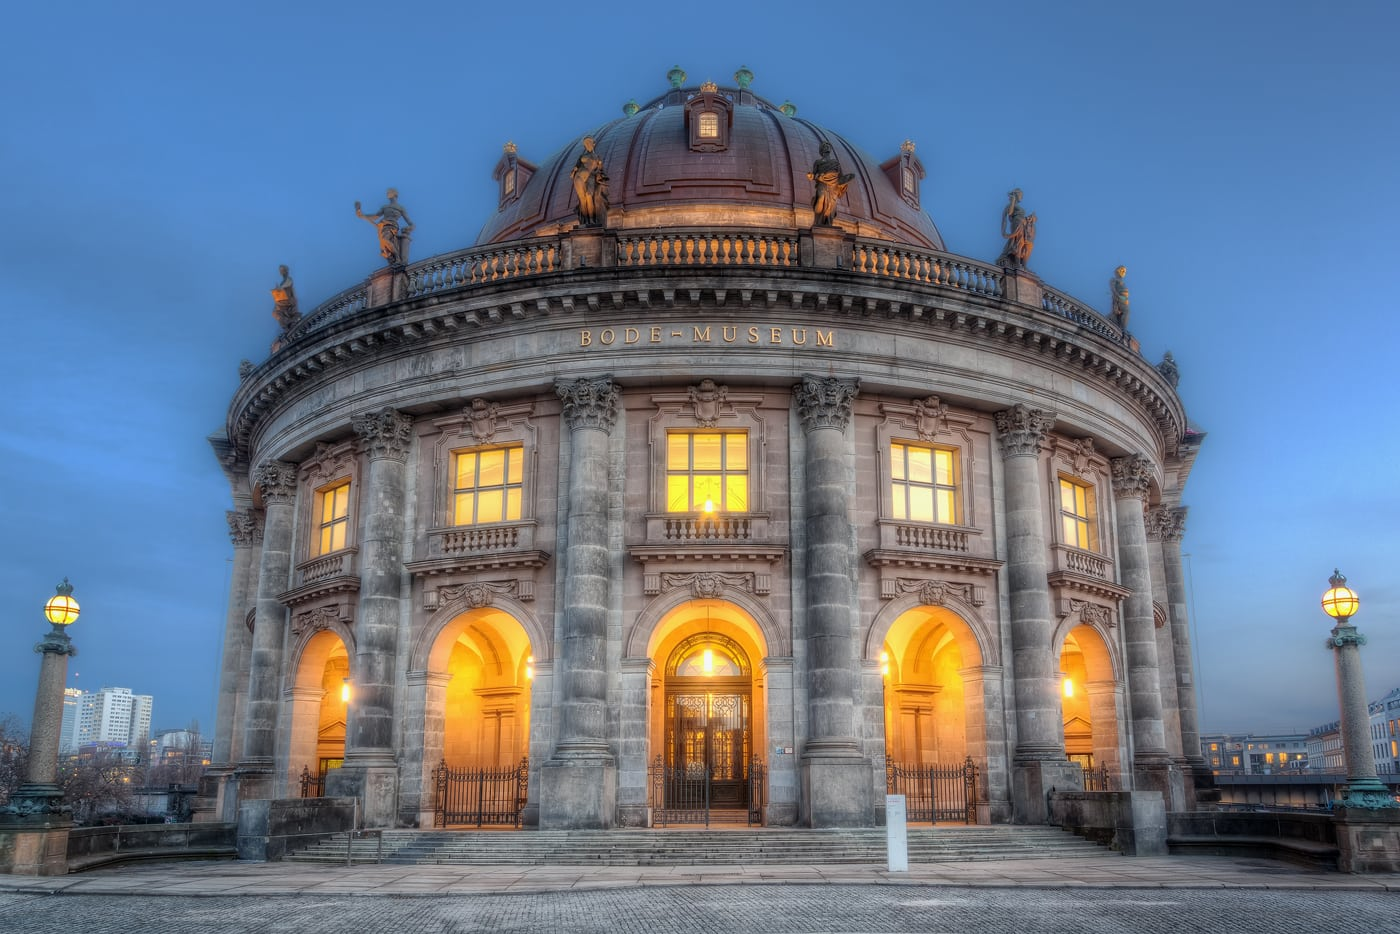 Bode Museum in Berlin with lights on